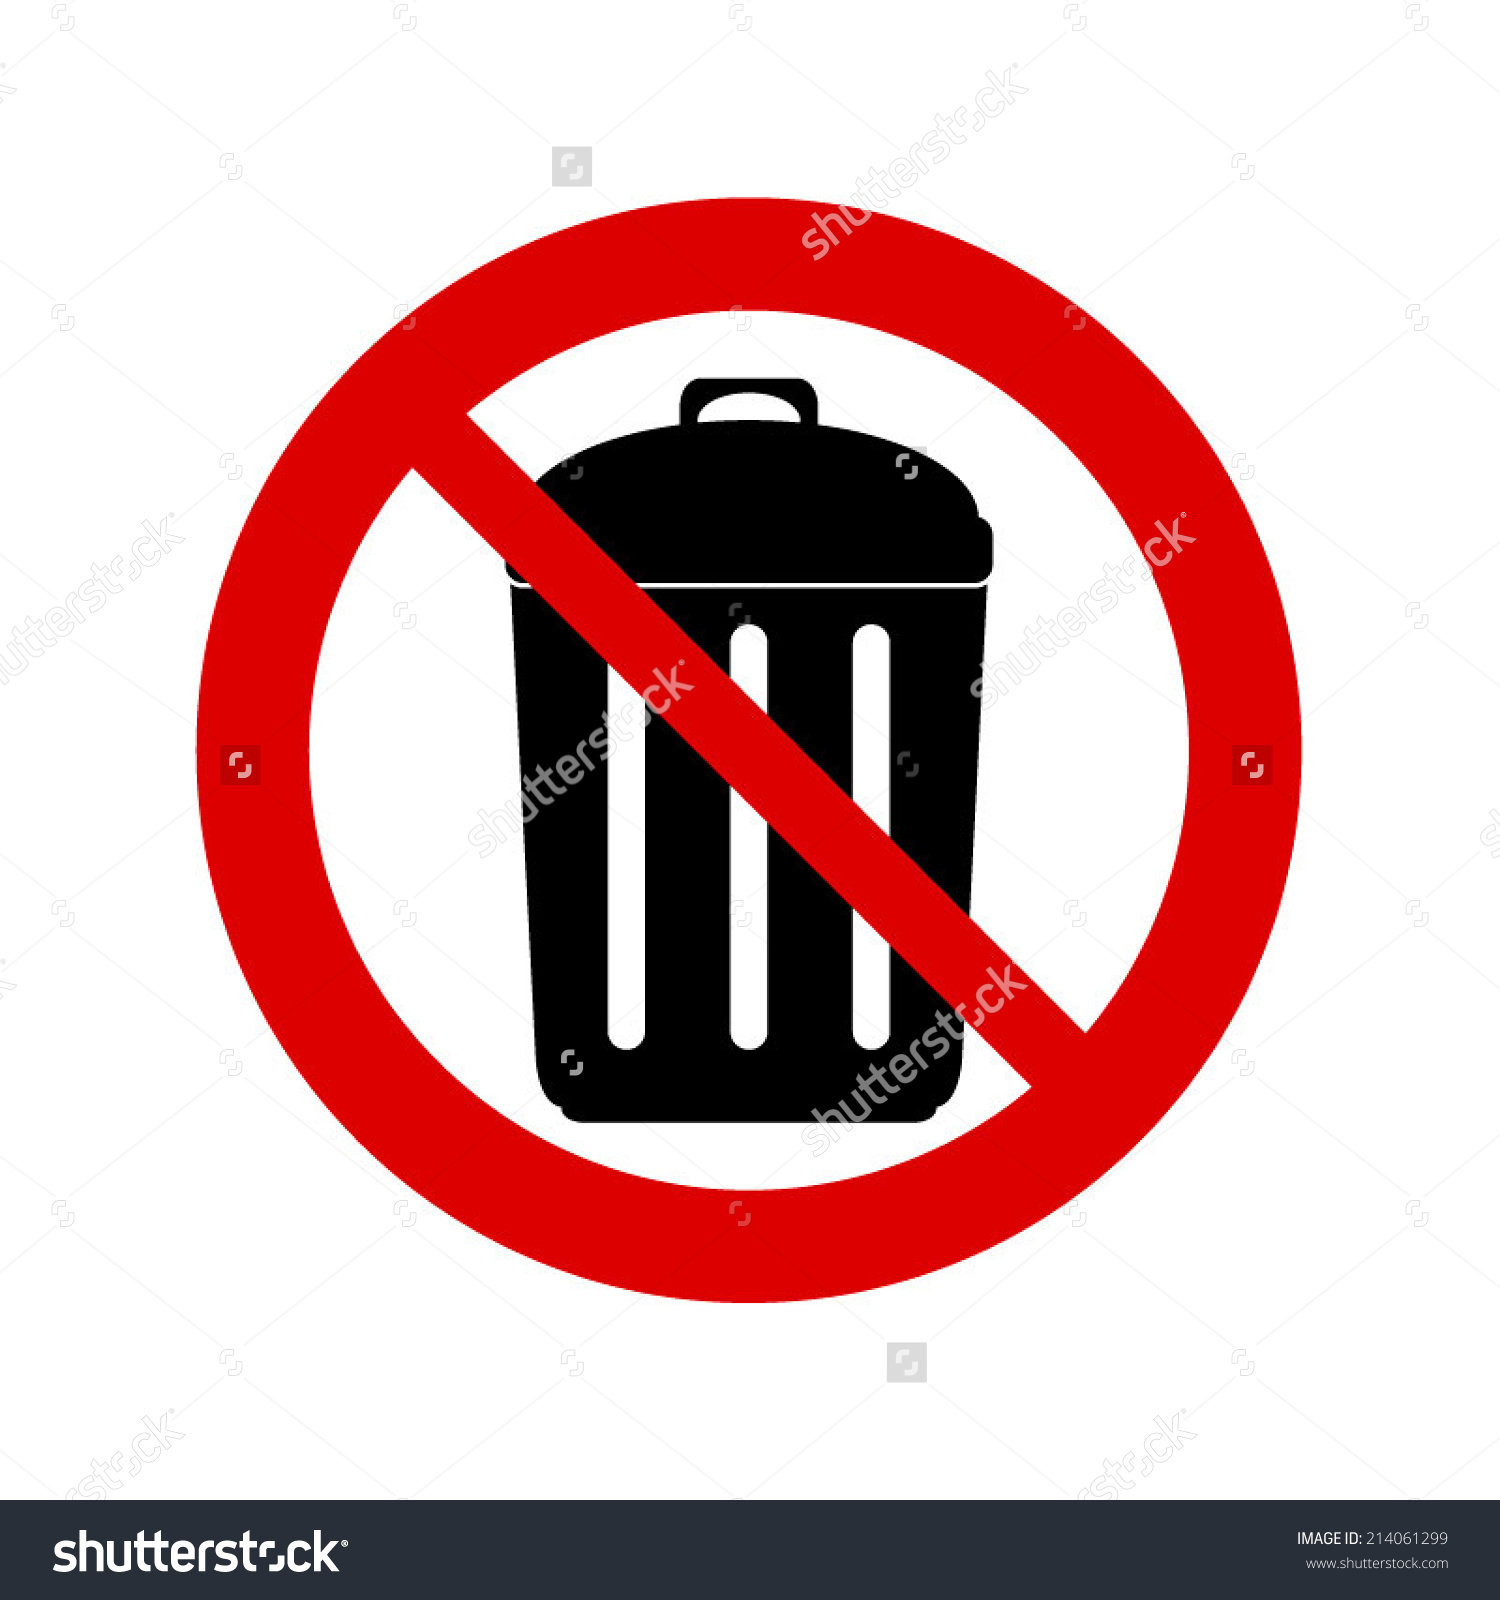 Don't throw garbage clipart.